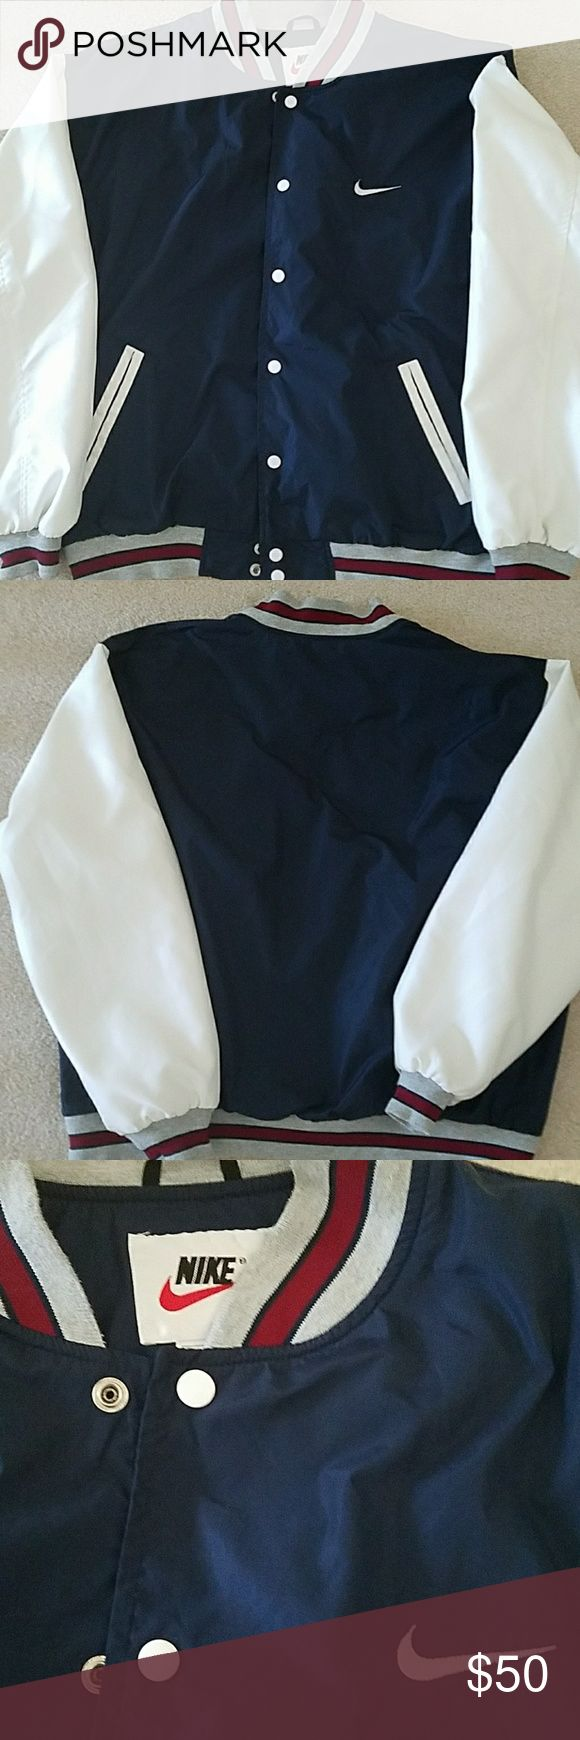 """Nike Mens Varsity Jacket Navy/White Windbreaker Nike Men's Varsity Windbreaker Jacket  Press stud closure.  Cuffs and waistband with stripe details and contrast sleeves.   Pit to Pit 27""""  Clean and ready to wear Nike Jackets & Coats Bomber & Varsity"""